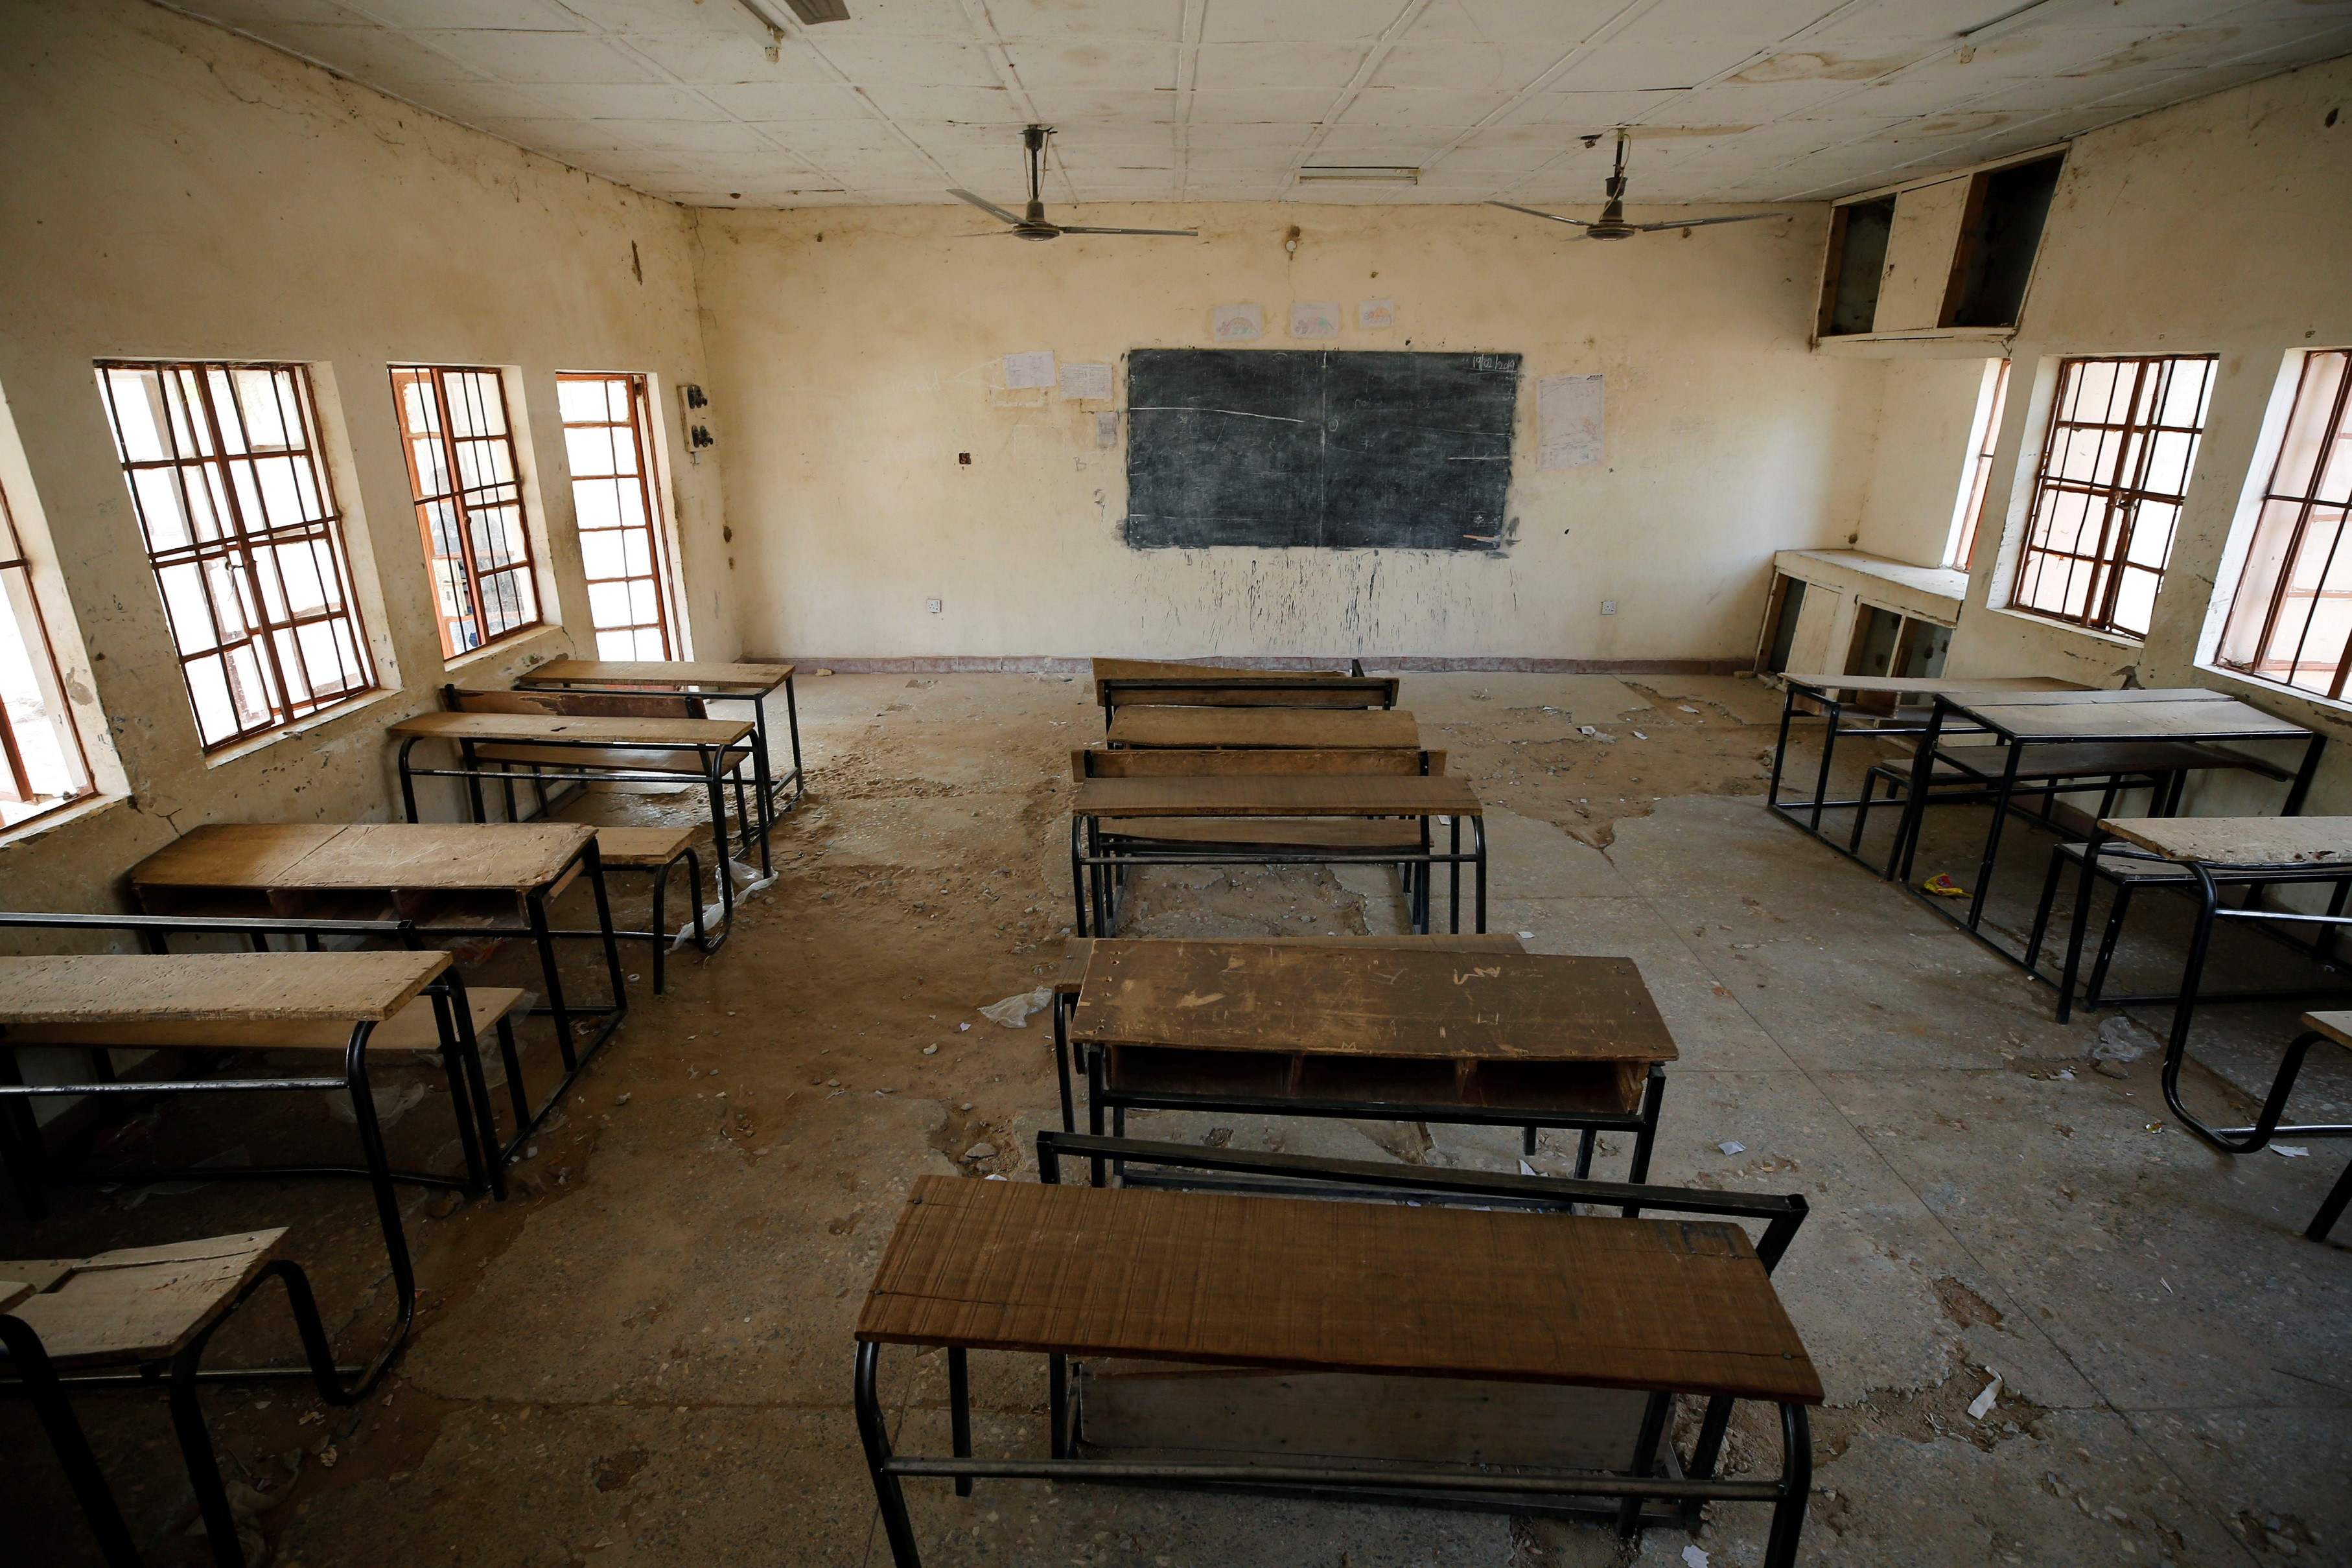 Boko Haram S Campaign Against Education And Enlightenment